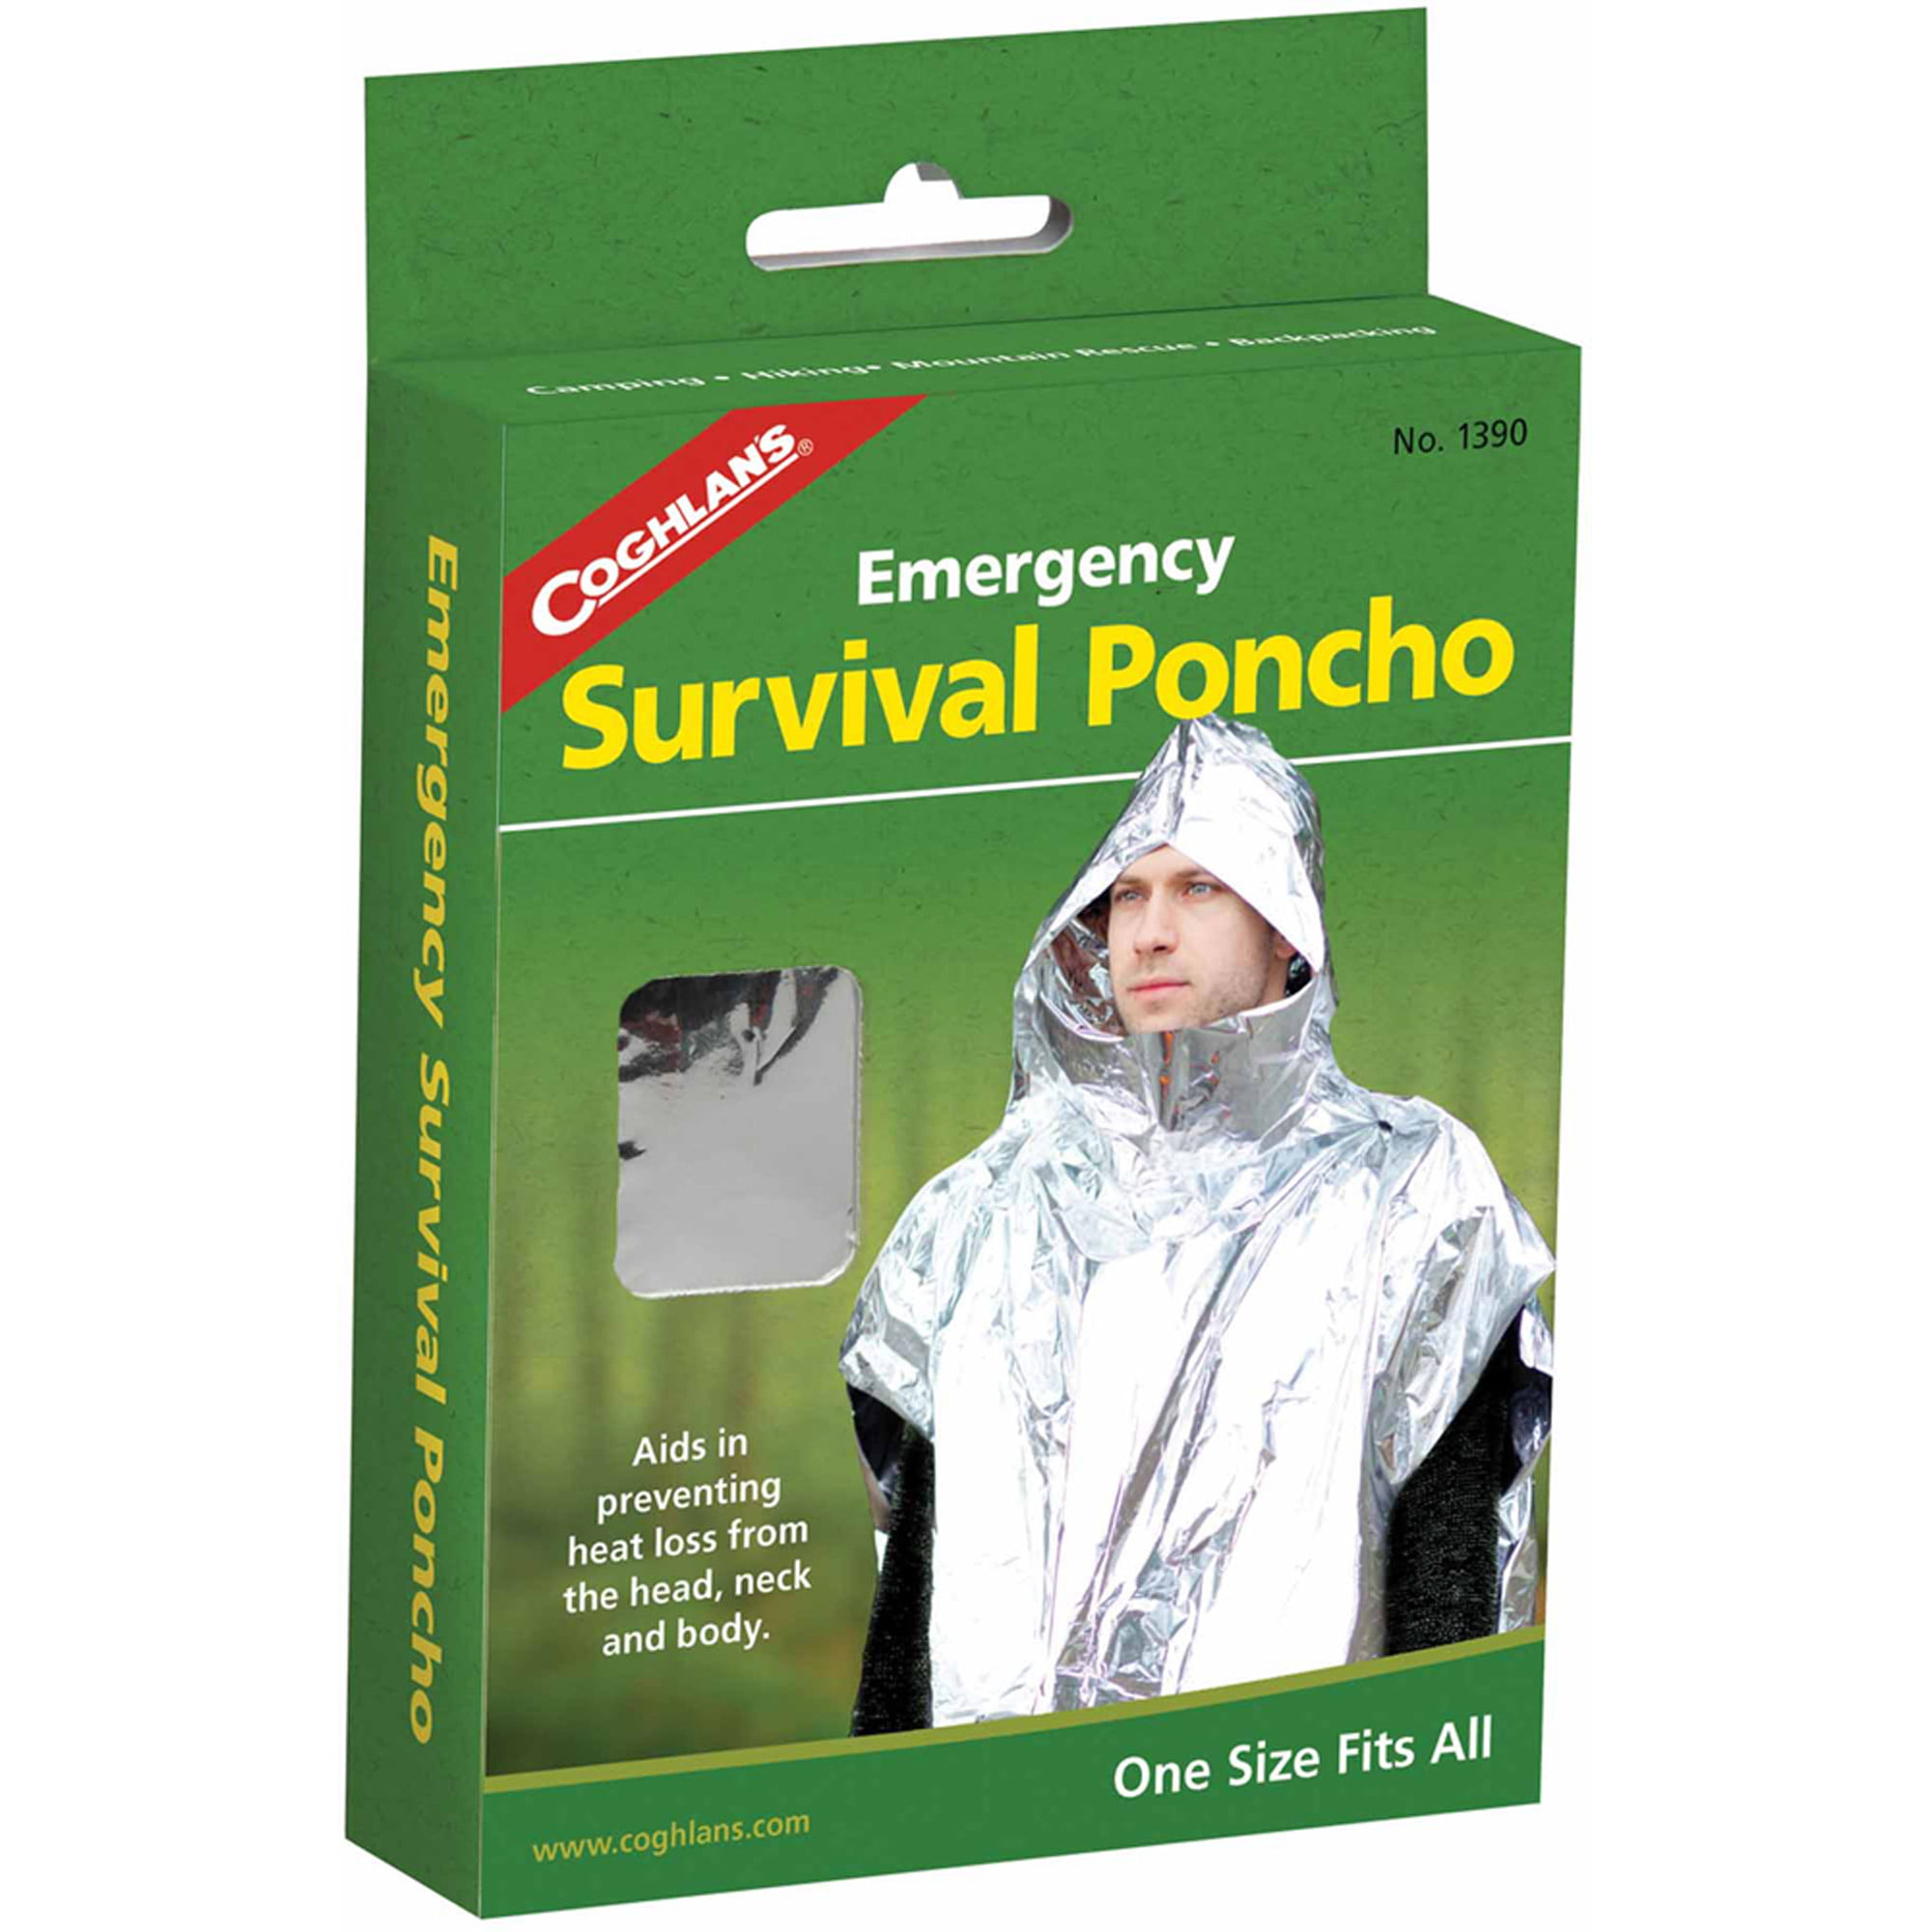 Coghlan's 1390 Emergency Survival Poncho by Generic